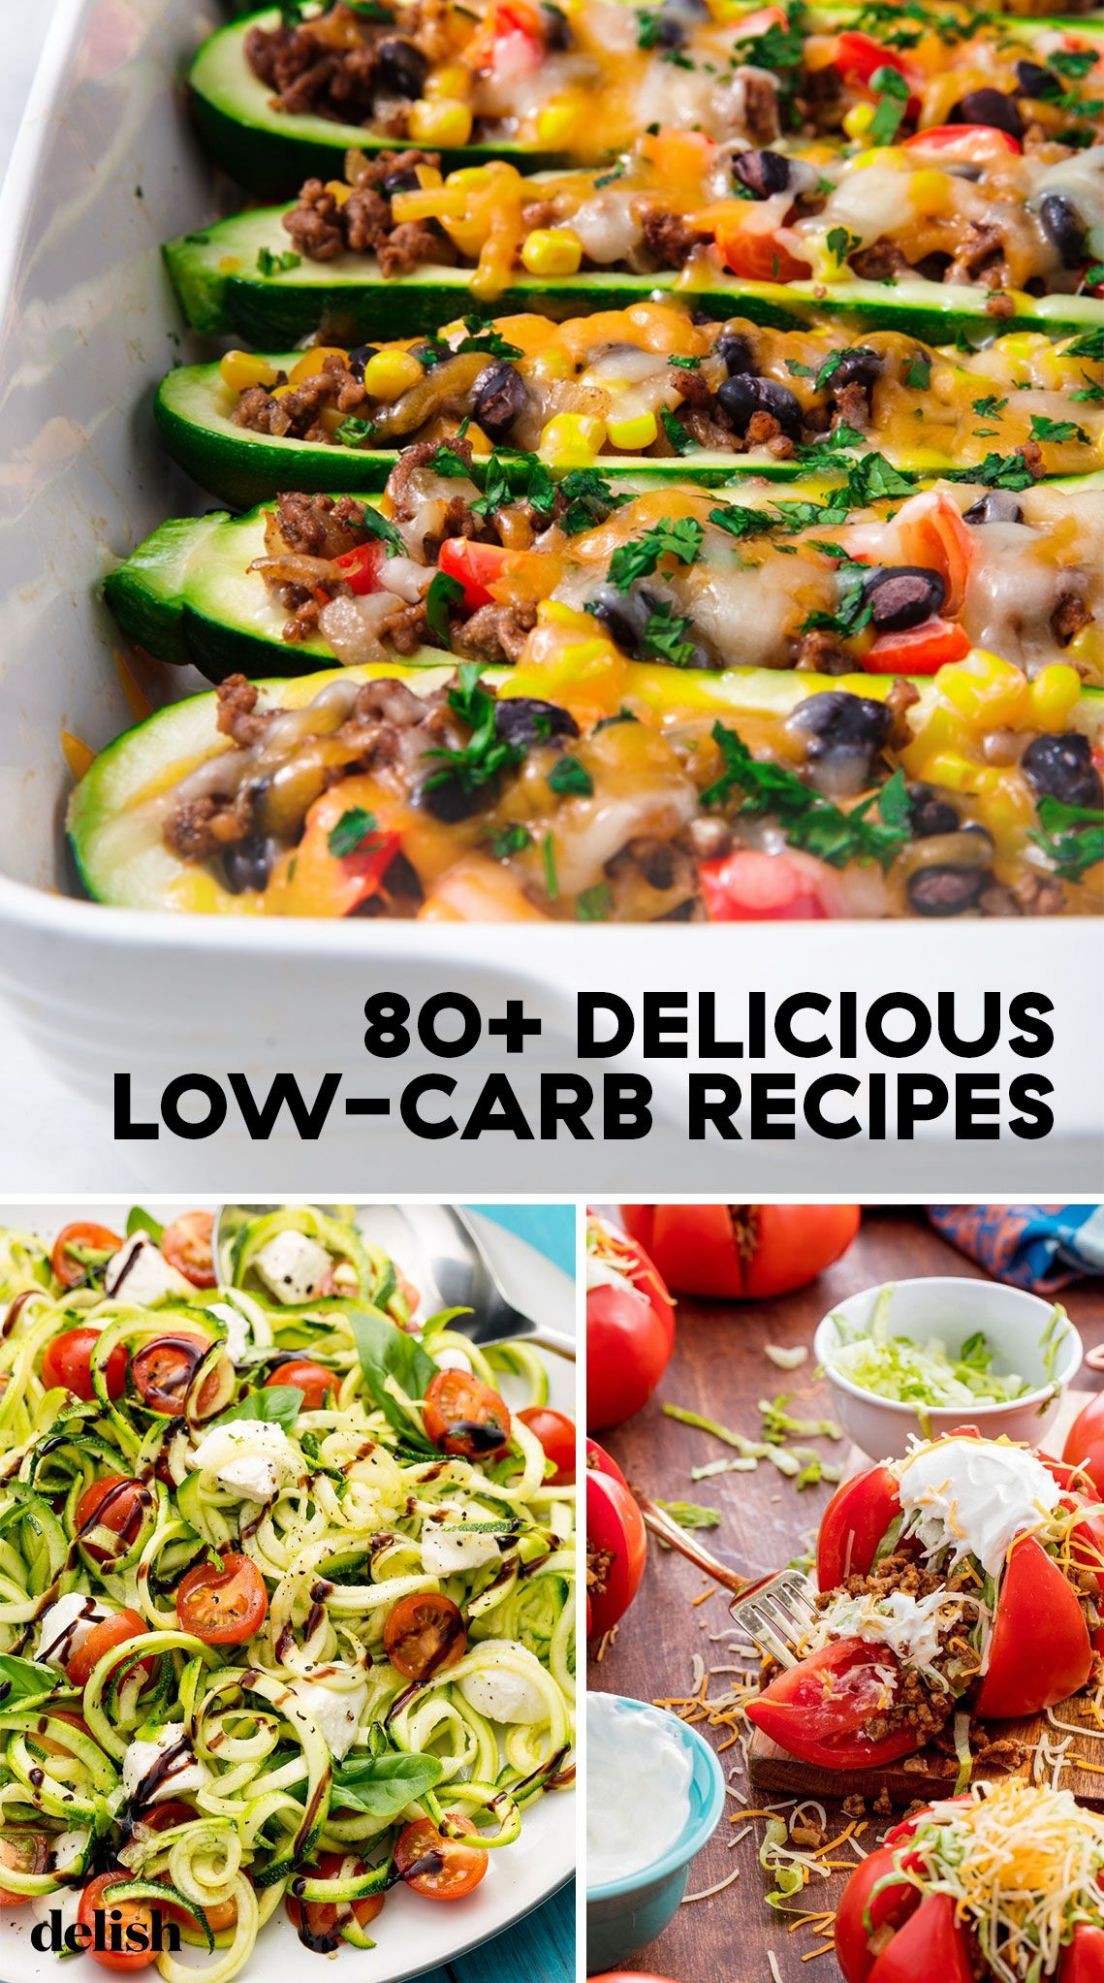 12+ Easy Low Carb Recipes - Best Low Carb Meal Ideas